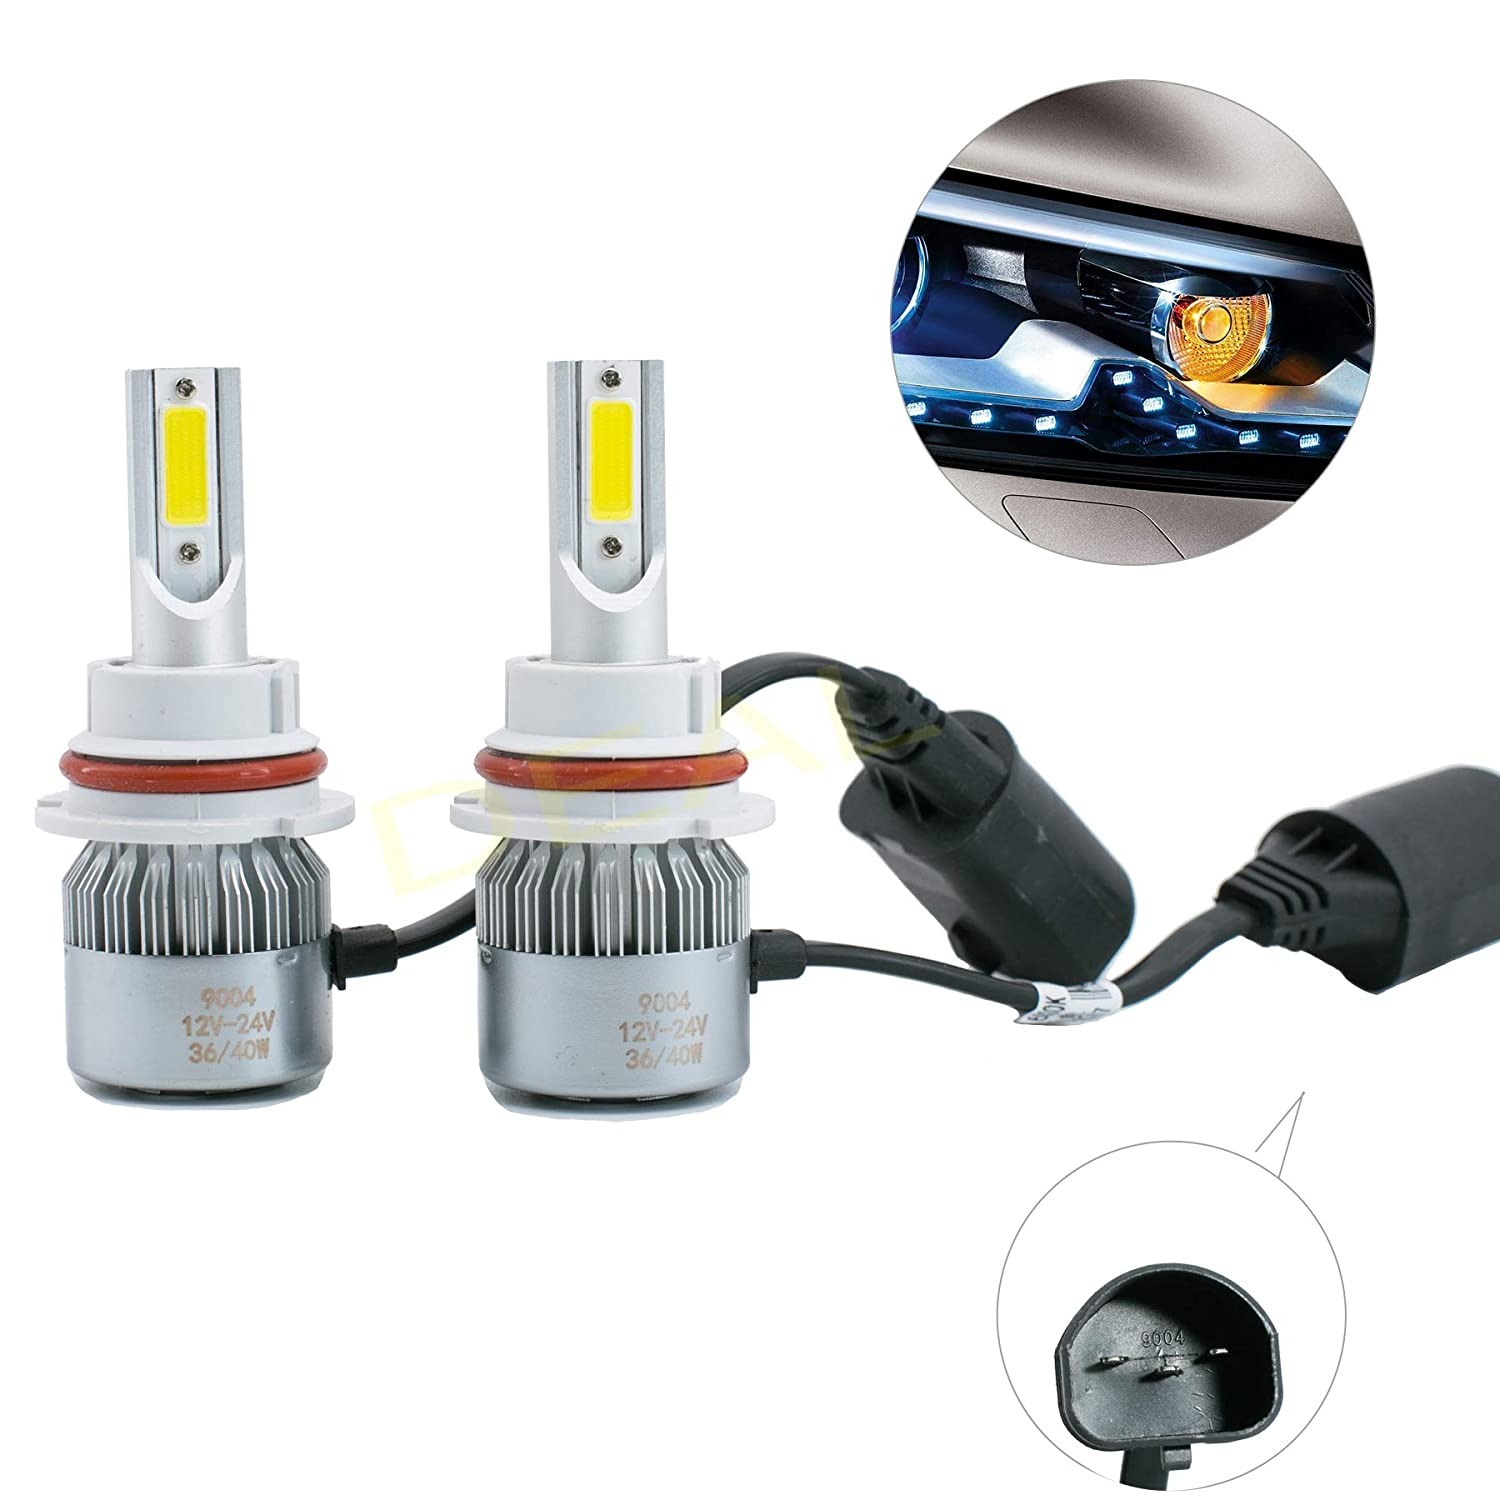 DEAL 2pcs 9004//HB1 6000K White 7200LM Aluminum Housing LED COB Bulbs Conversion Kit For Headlights High Low Dual Beam DC 12V//24V IP67 Waterproof Pack of 2 Left+Right Replacement